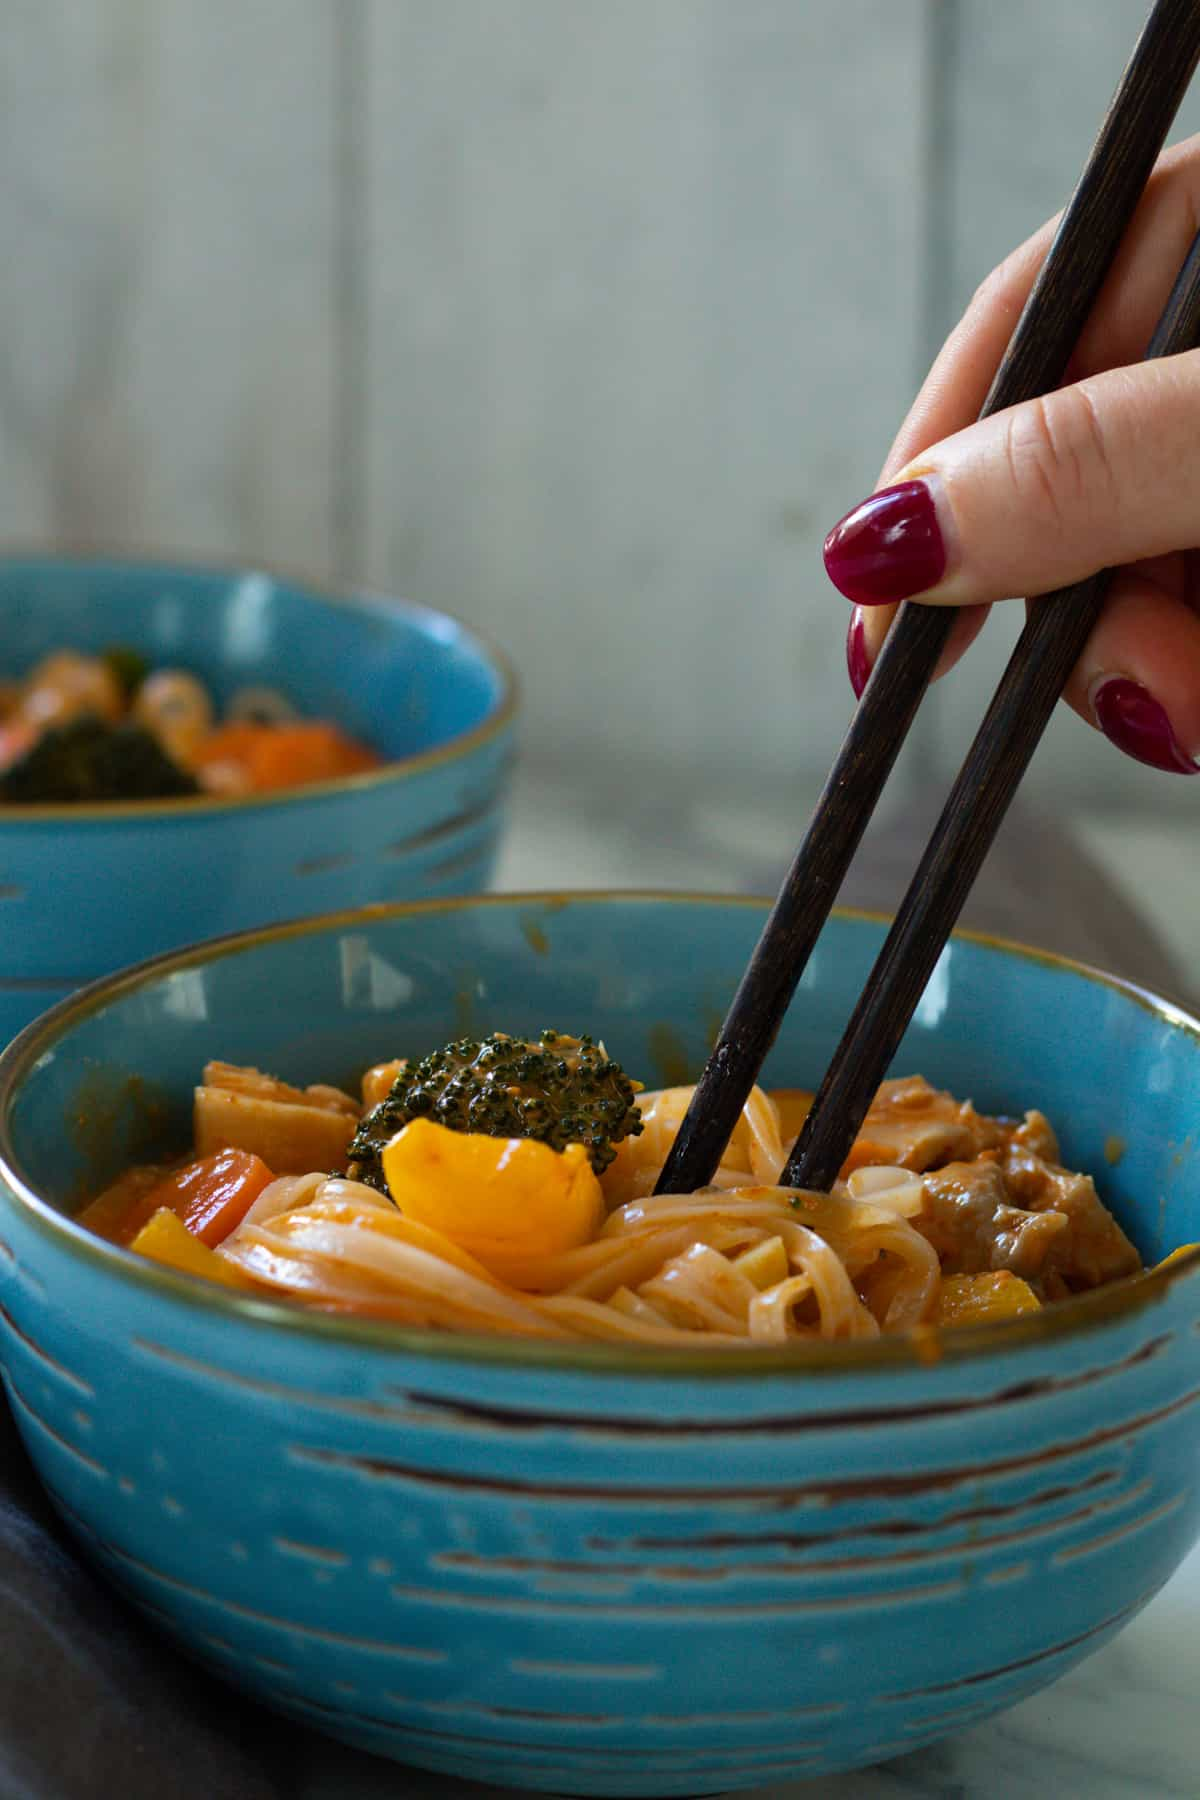 chopsticks swirling around in a bowl of spicy chicken noodle soup